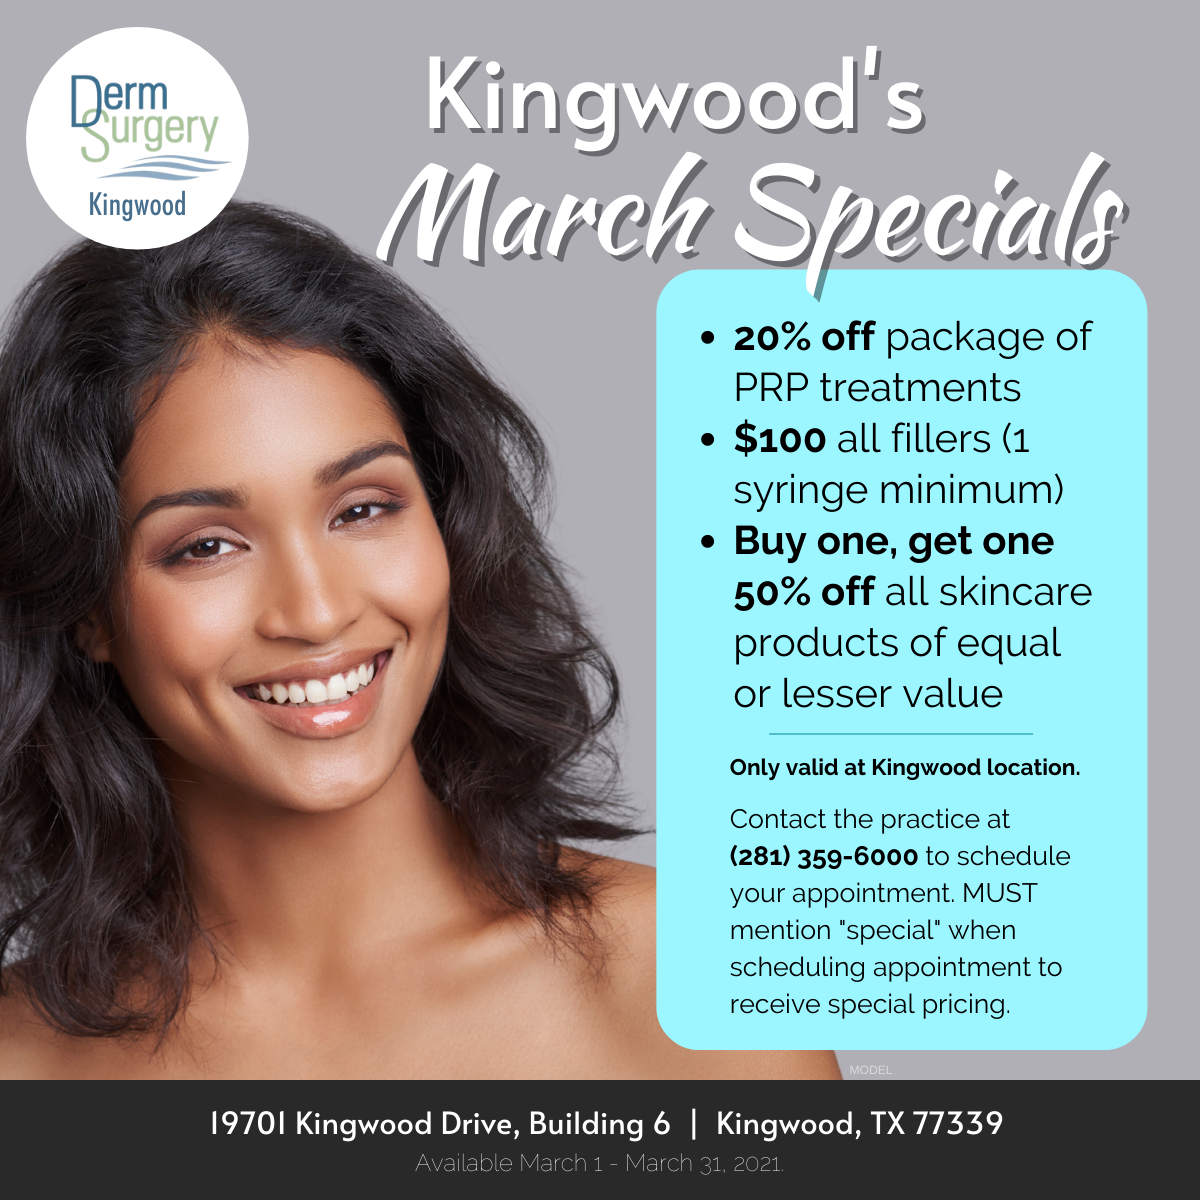 Kingwood Spa's March Specials